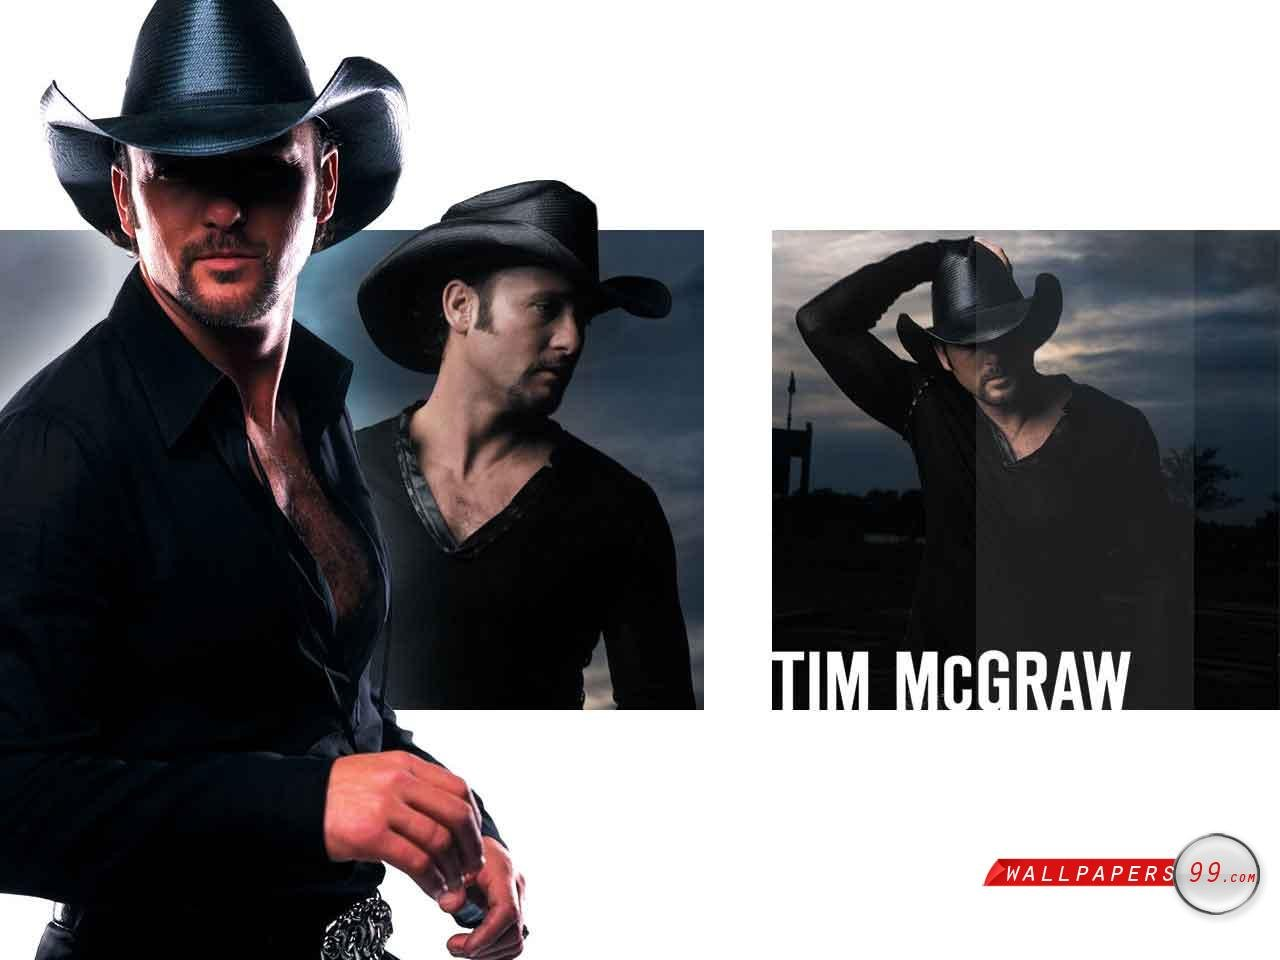 Tim McGraw Wallpaper Picture Image 1280x960 16963 1280x960